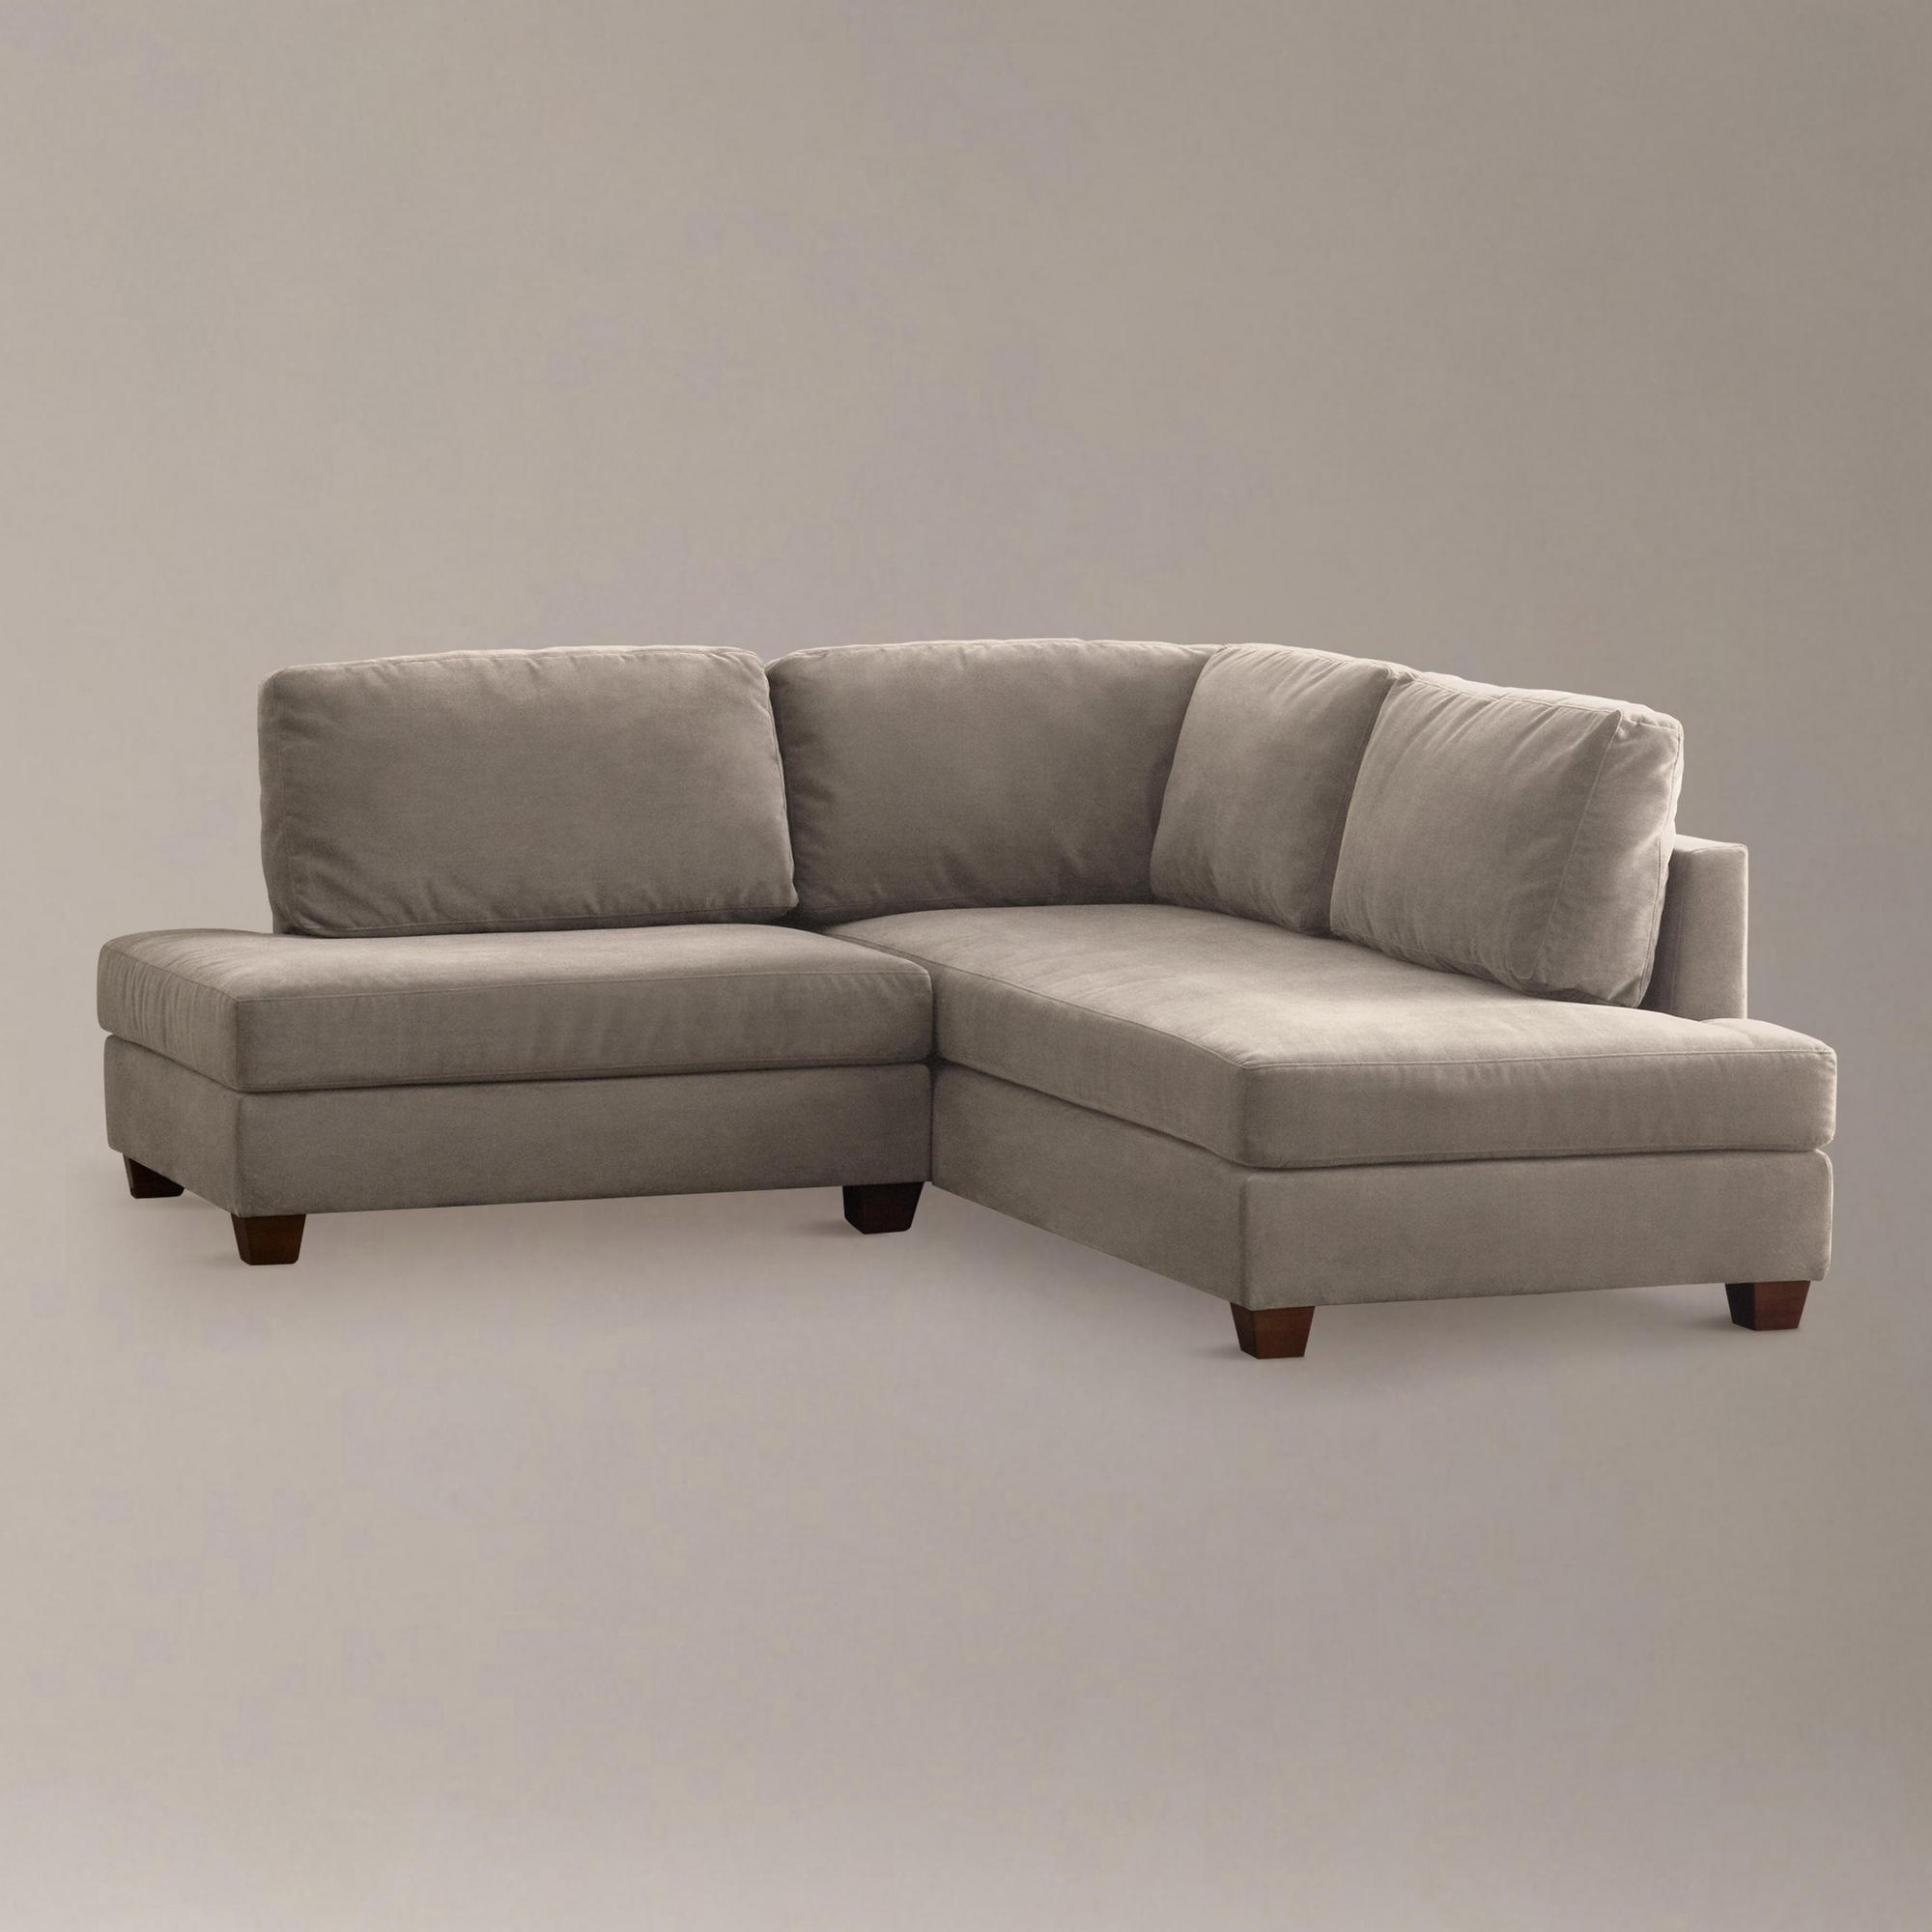 Lee Sofas On Sale | Tehranmix Decoration Intended For Lee Industries Sectional Sofa (Image 18 of 20)